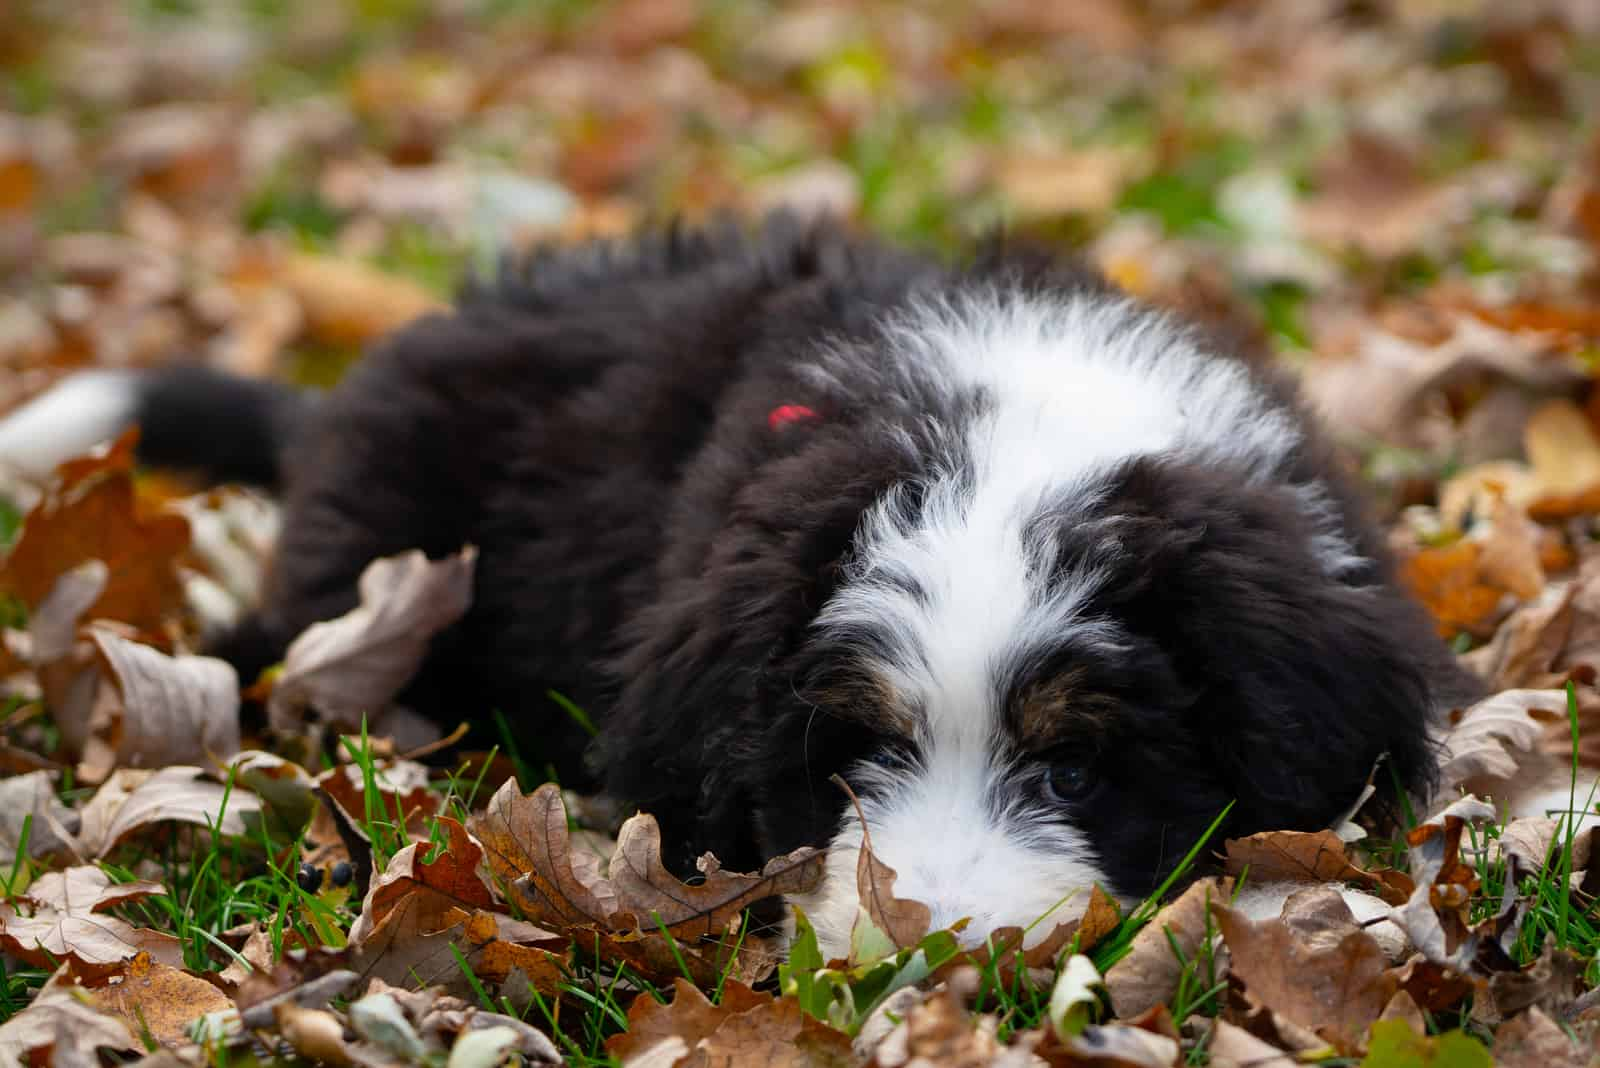 bernedoodle puppy lies in dry leaves